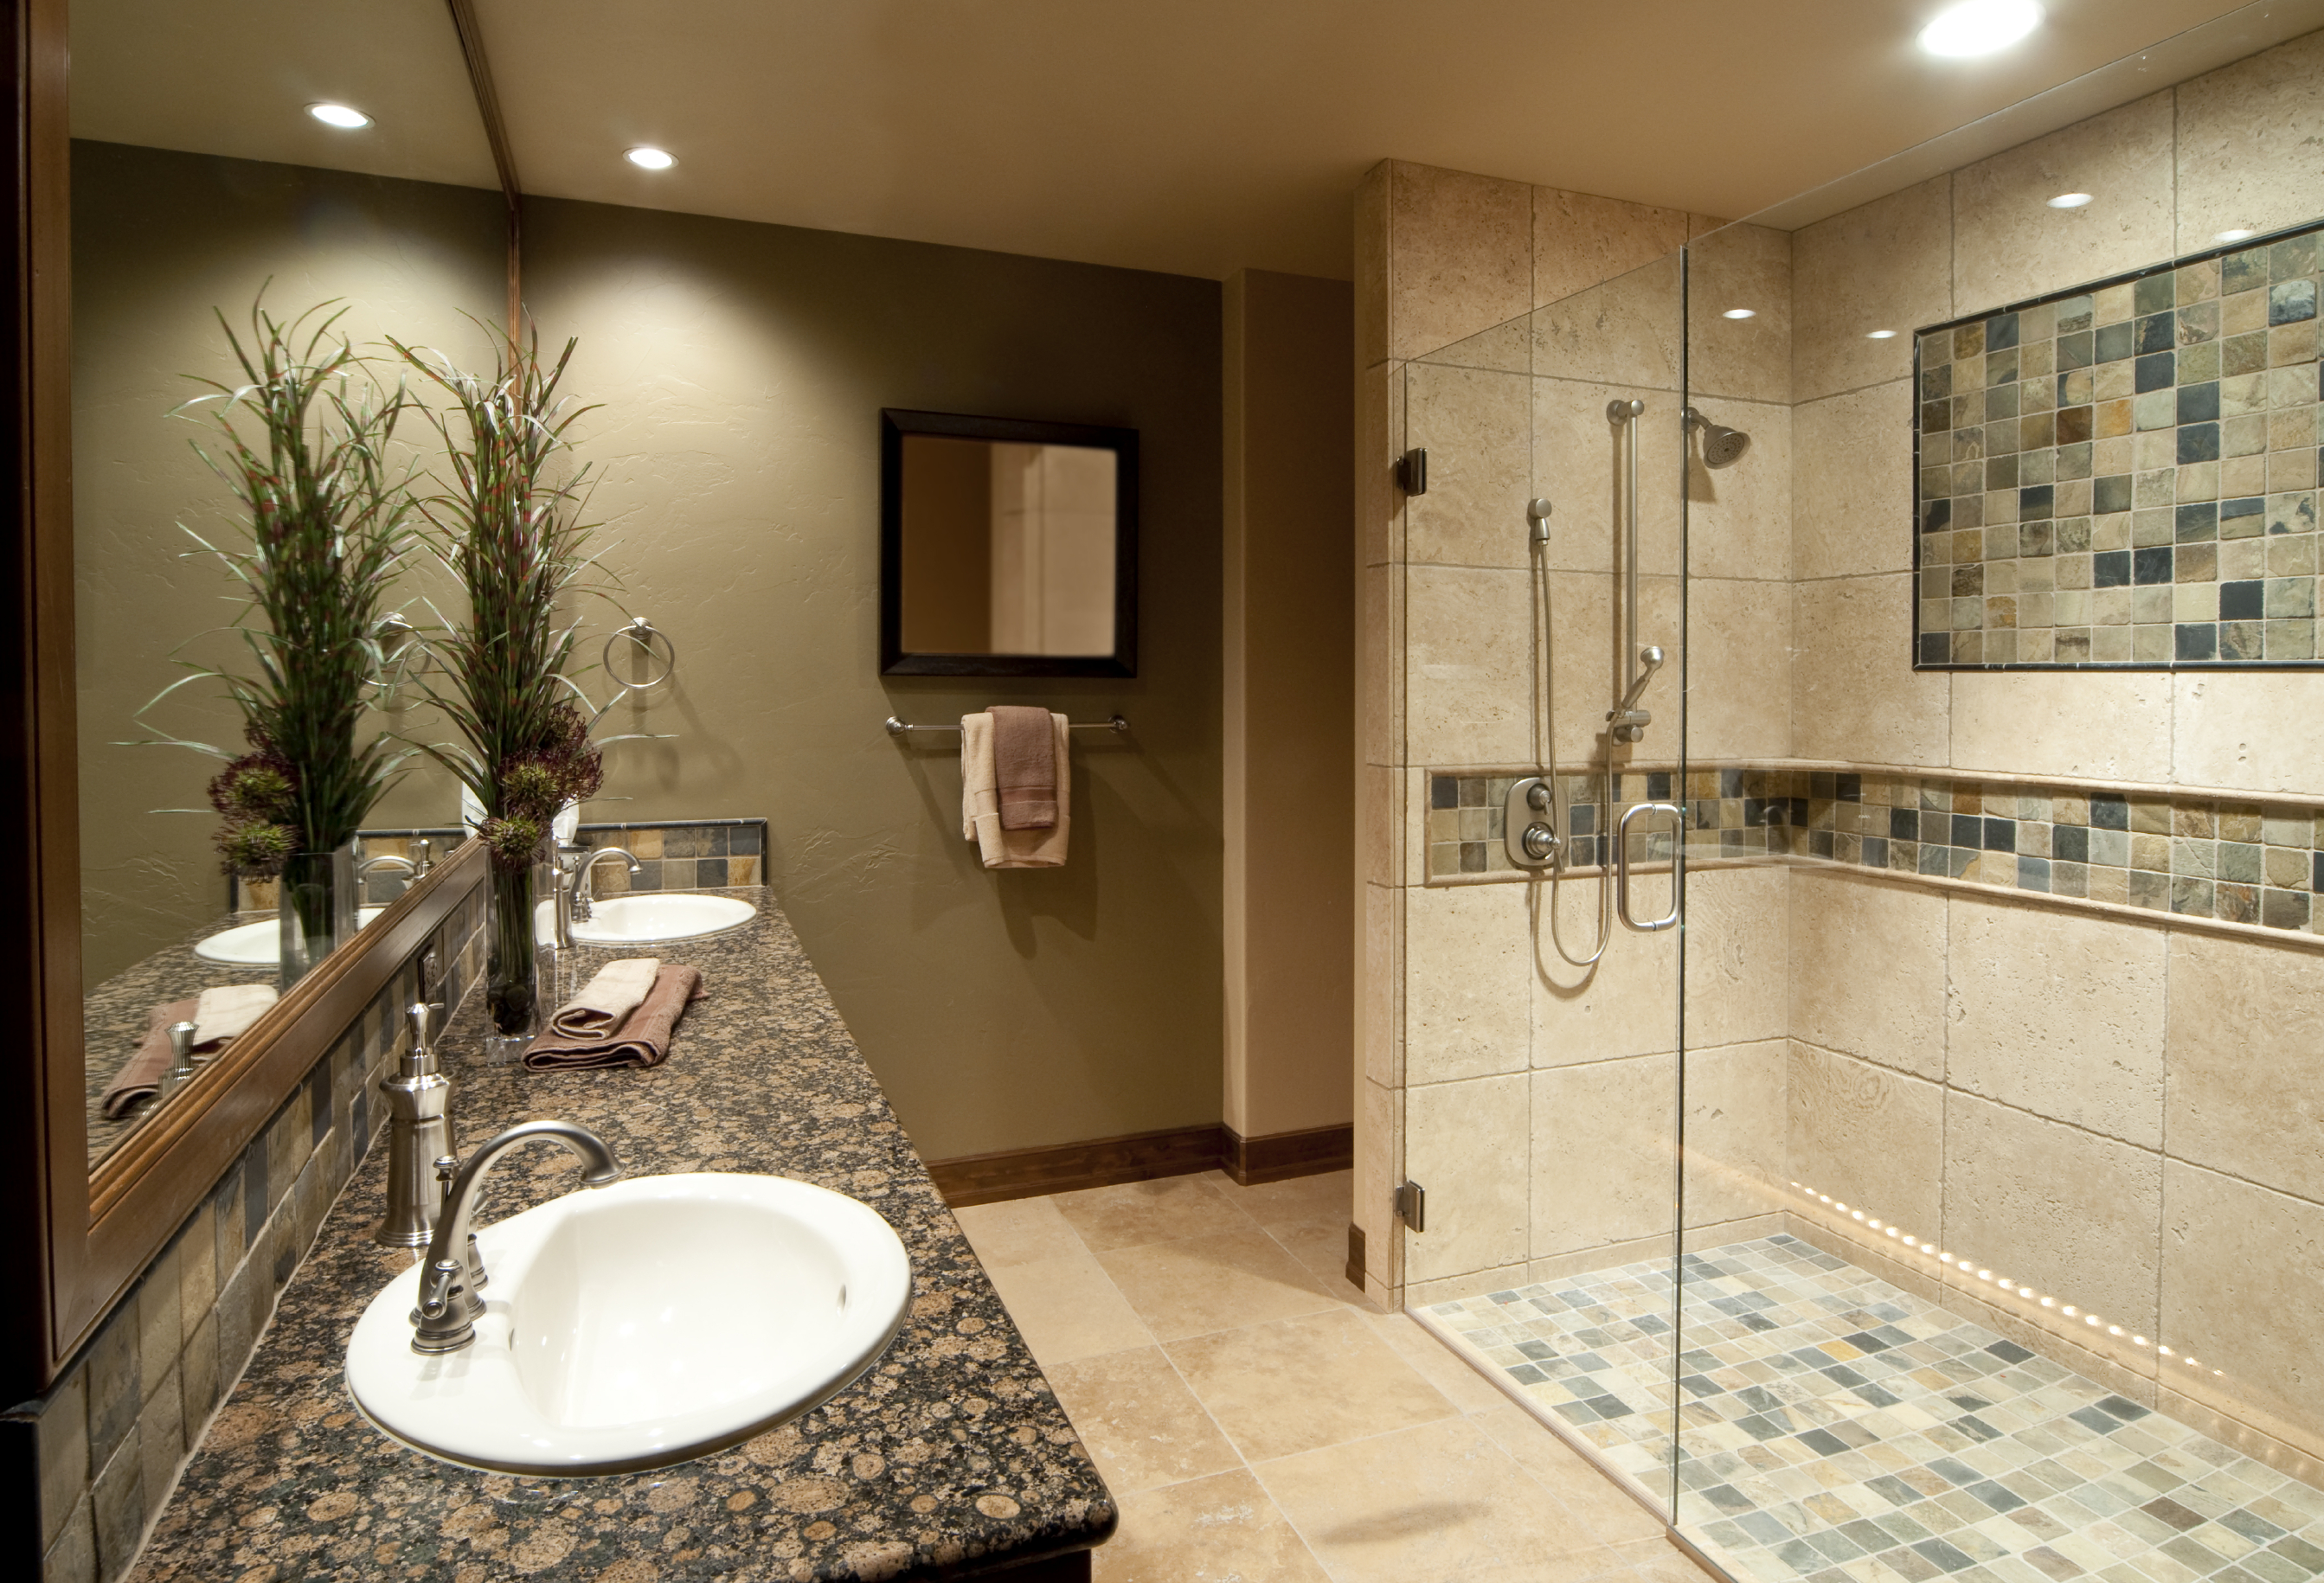 Bathroom Remodels Examples examples of renovated bathrooms - insurserviceonline